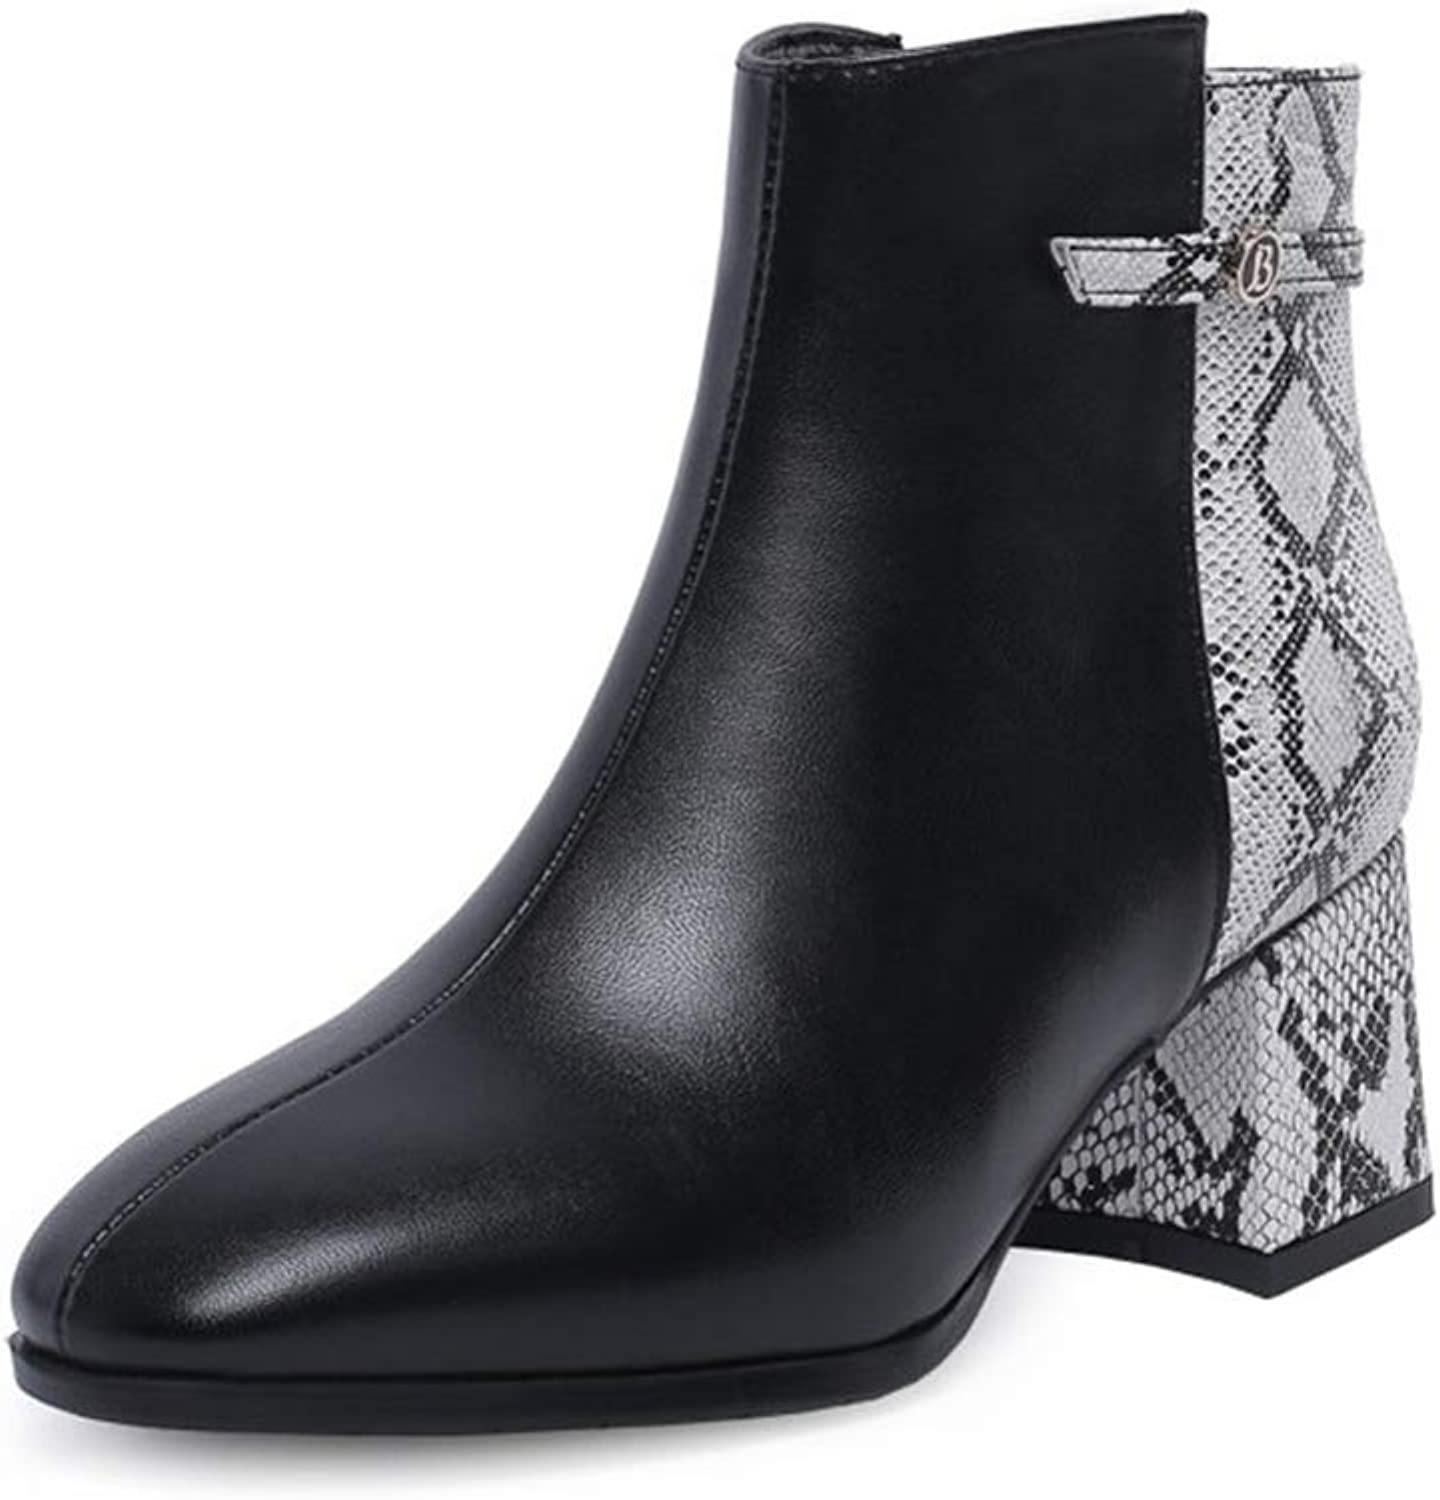 Woman Ankle Boots Mid Chunky Heel Zipper Snake Print PU Round Toe Ladies Sexy Fashion Buckle Party Short shoes